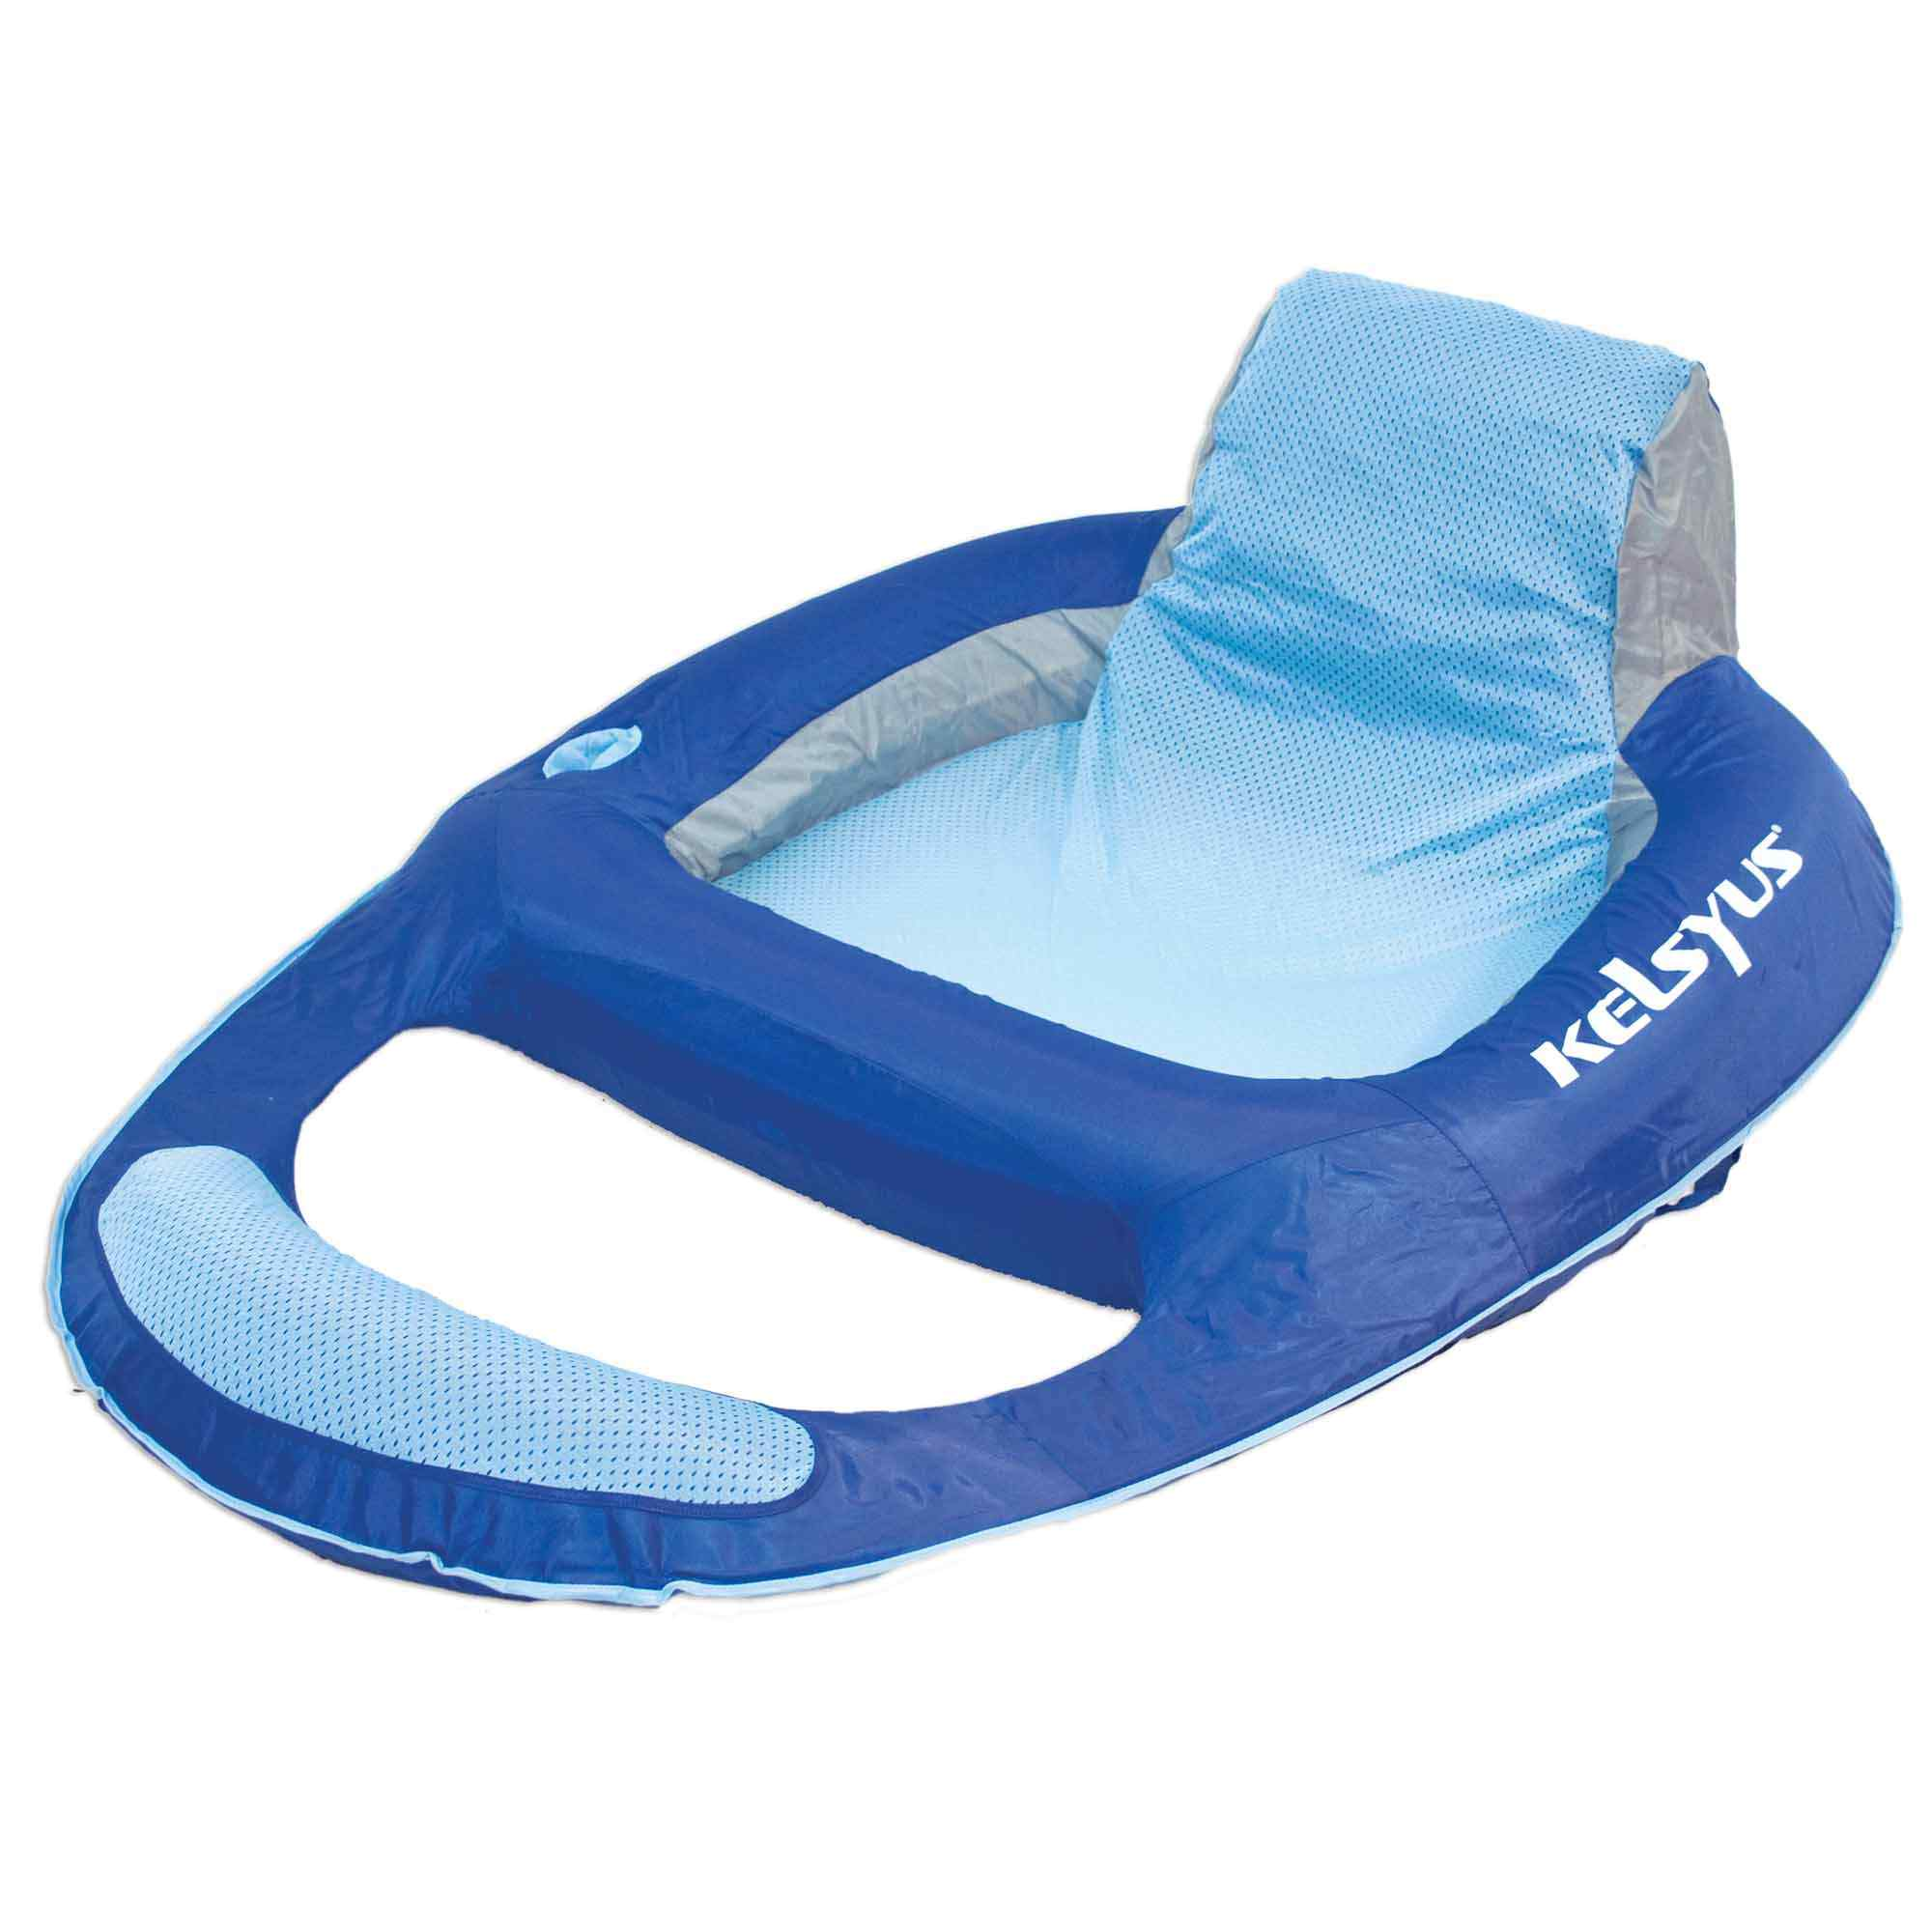 chair pool floats dance jewish wedding large portable floating lounger with headrest dfohome